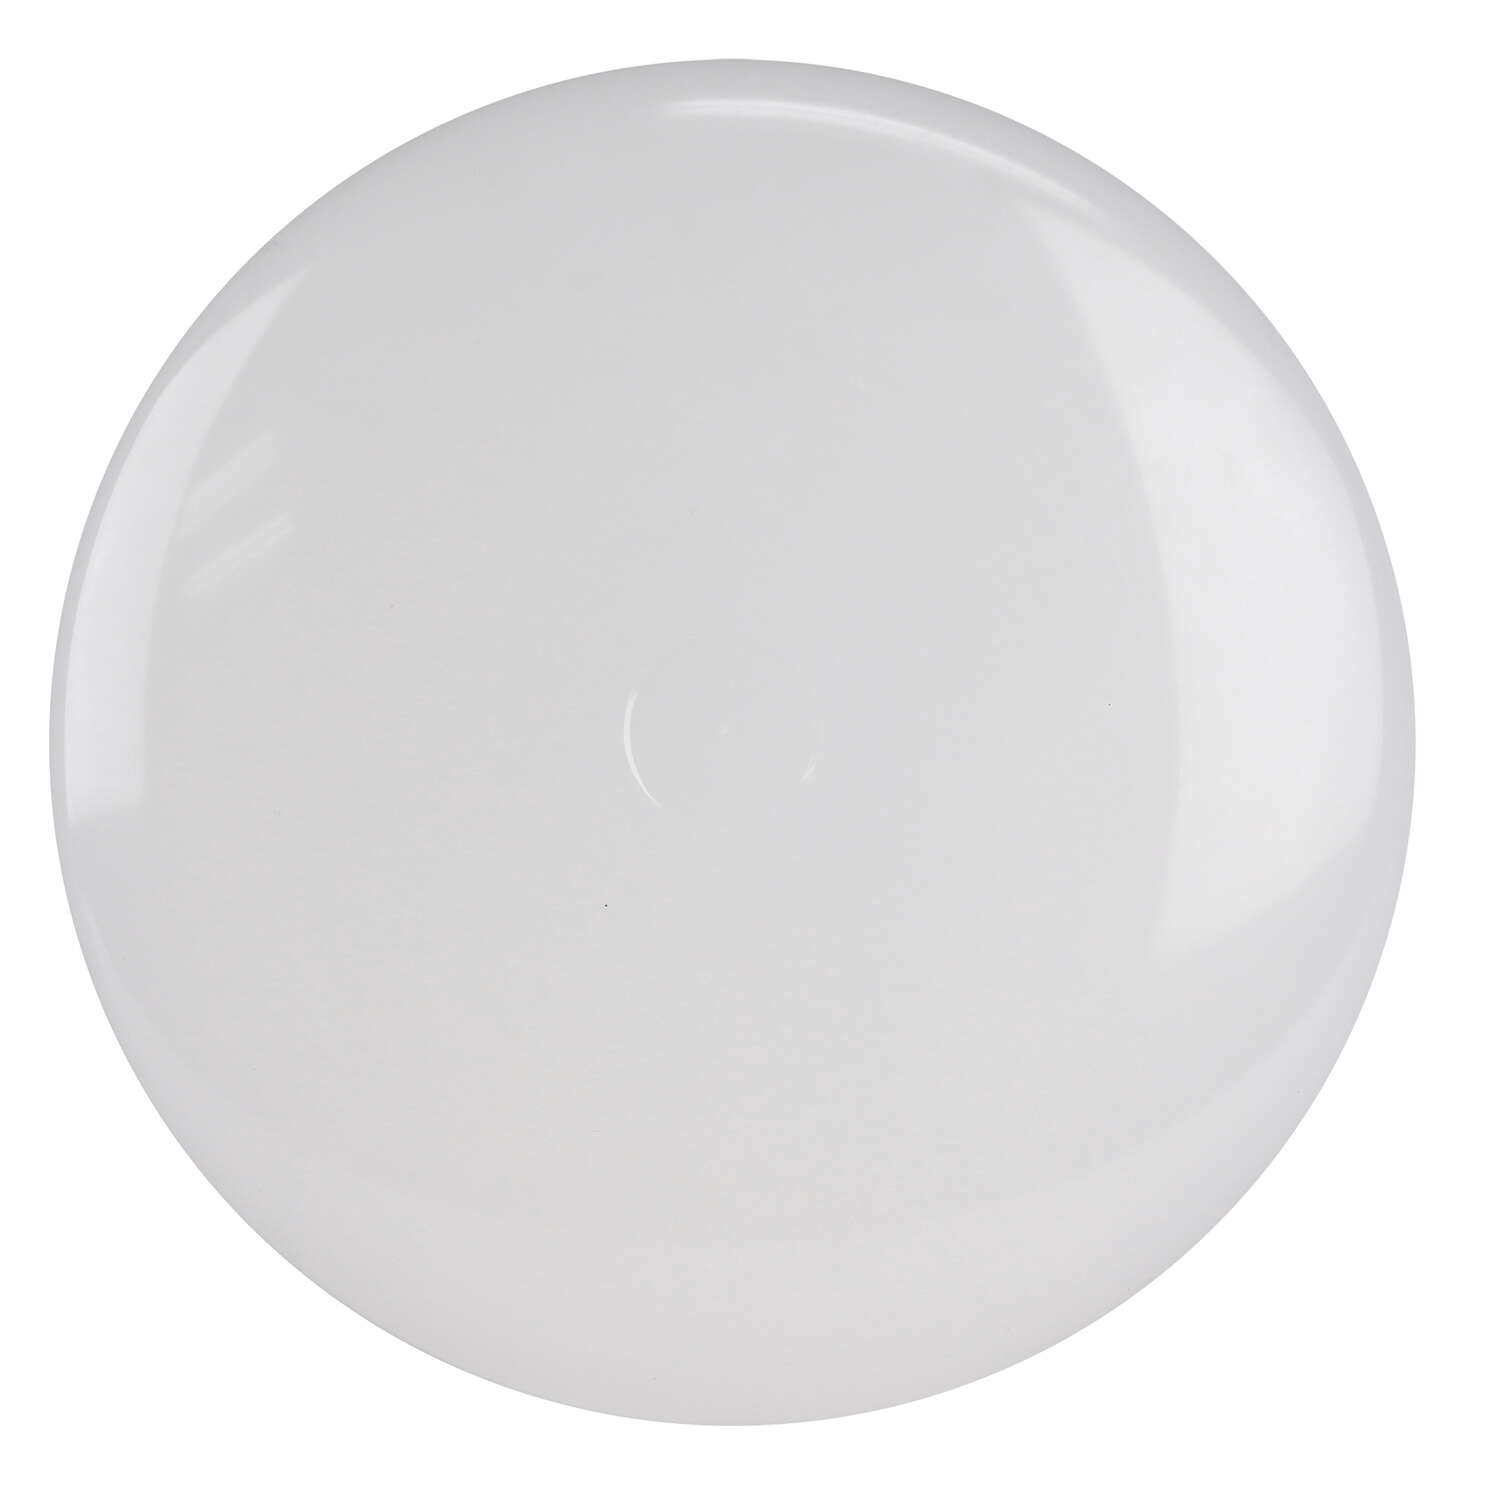 Feit Electric  3.3 in. H x 8 in. W x 8 in. L White  LED Disk Light